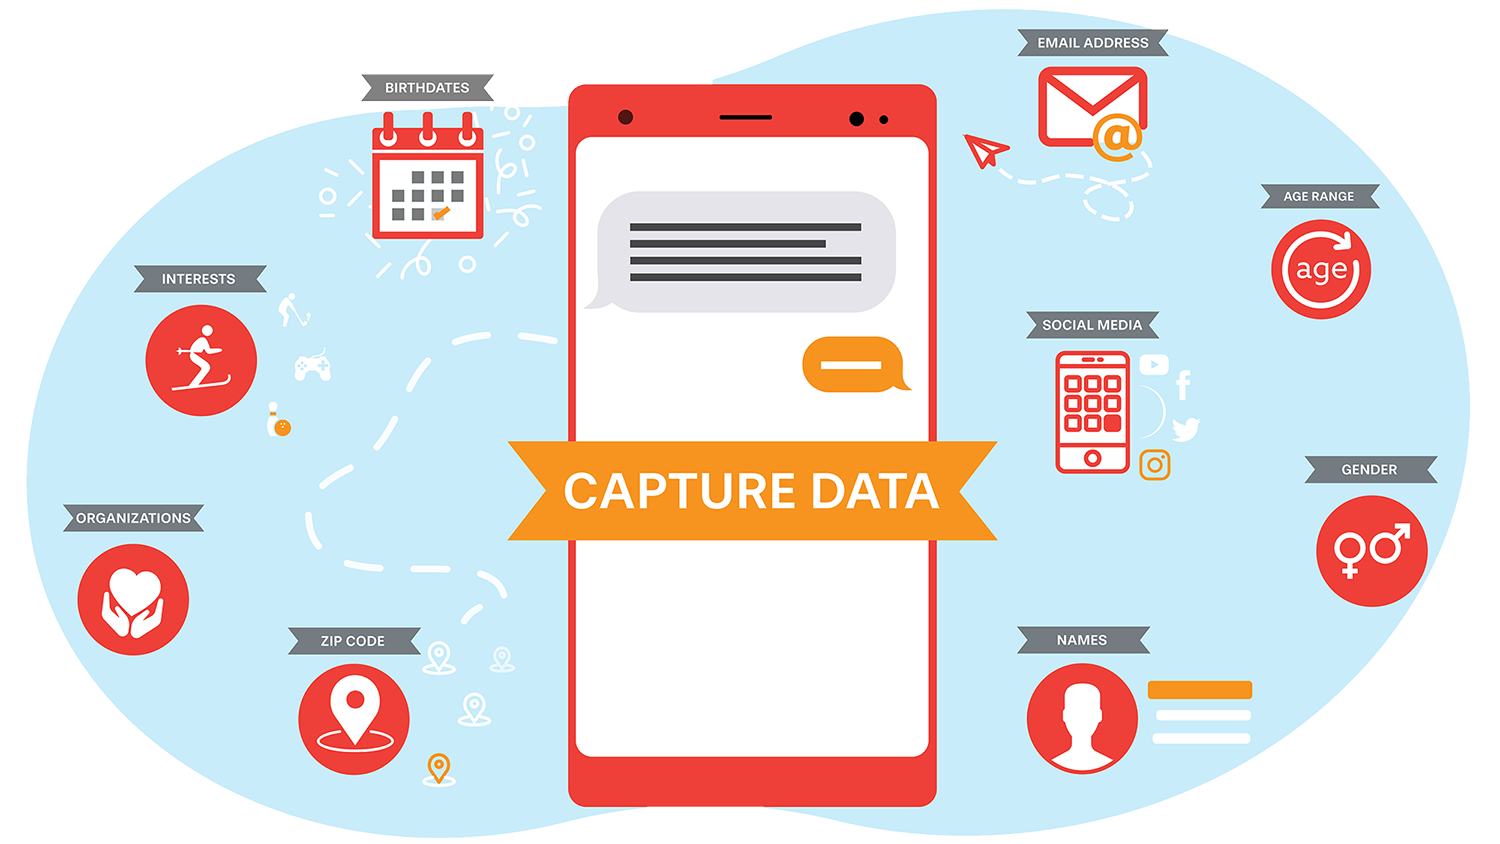 Data capture is especially powerful when the data is about so many different parts of a contact's life.